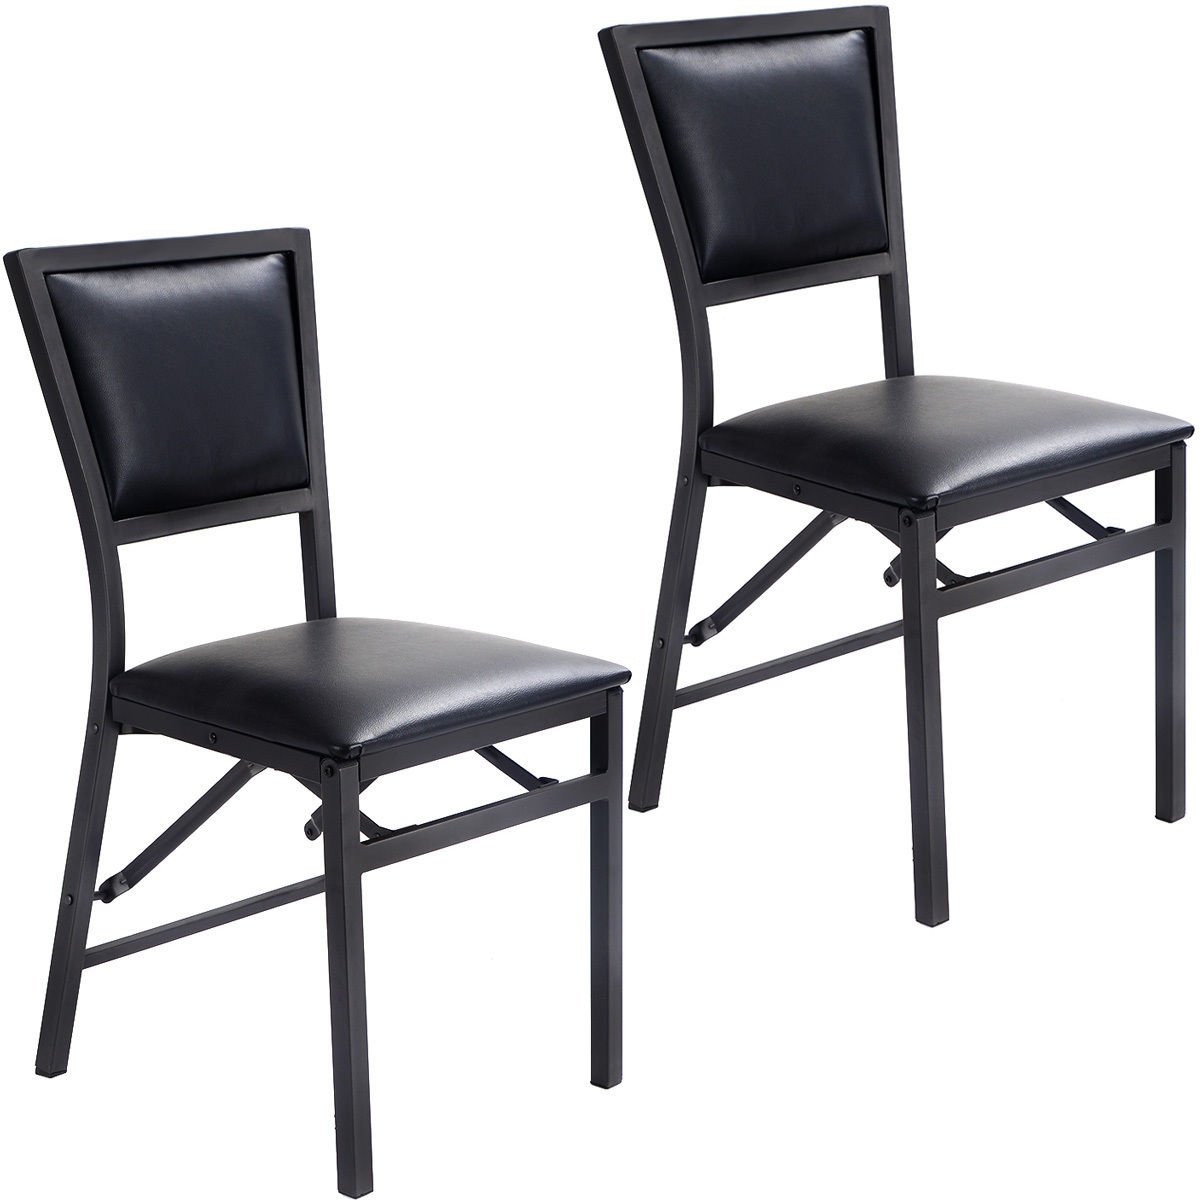 PROSPERLY U.S.Product Set of 2 Metal Folding Chair Dining Chairs Home Restaurant Furniture Portable